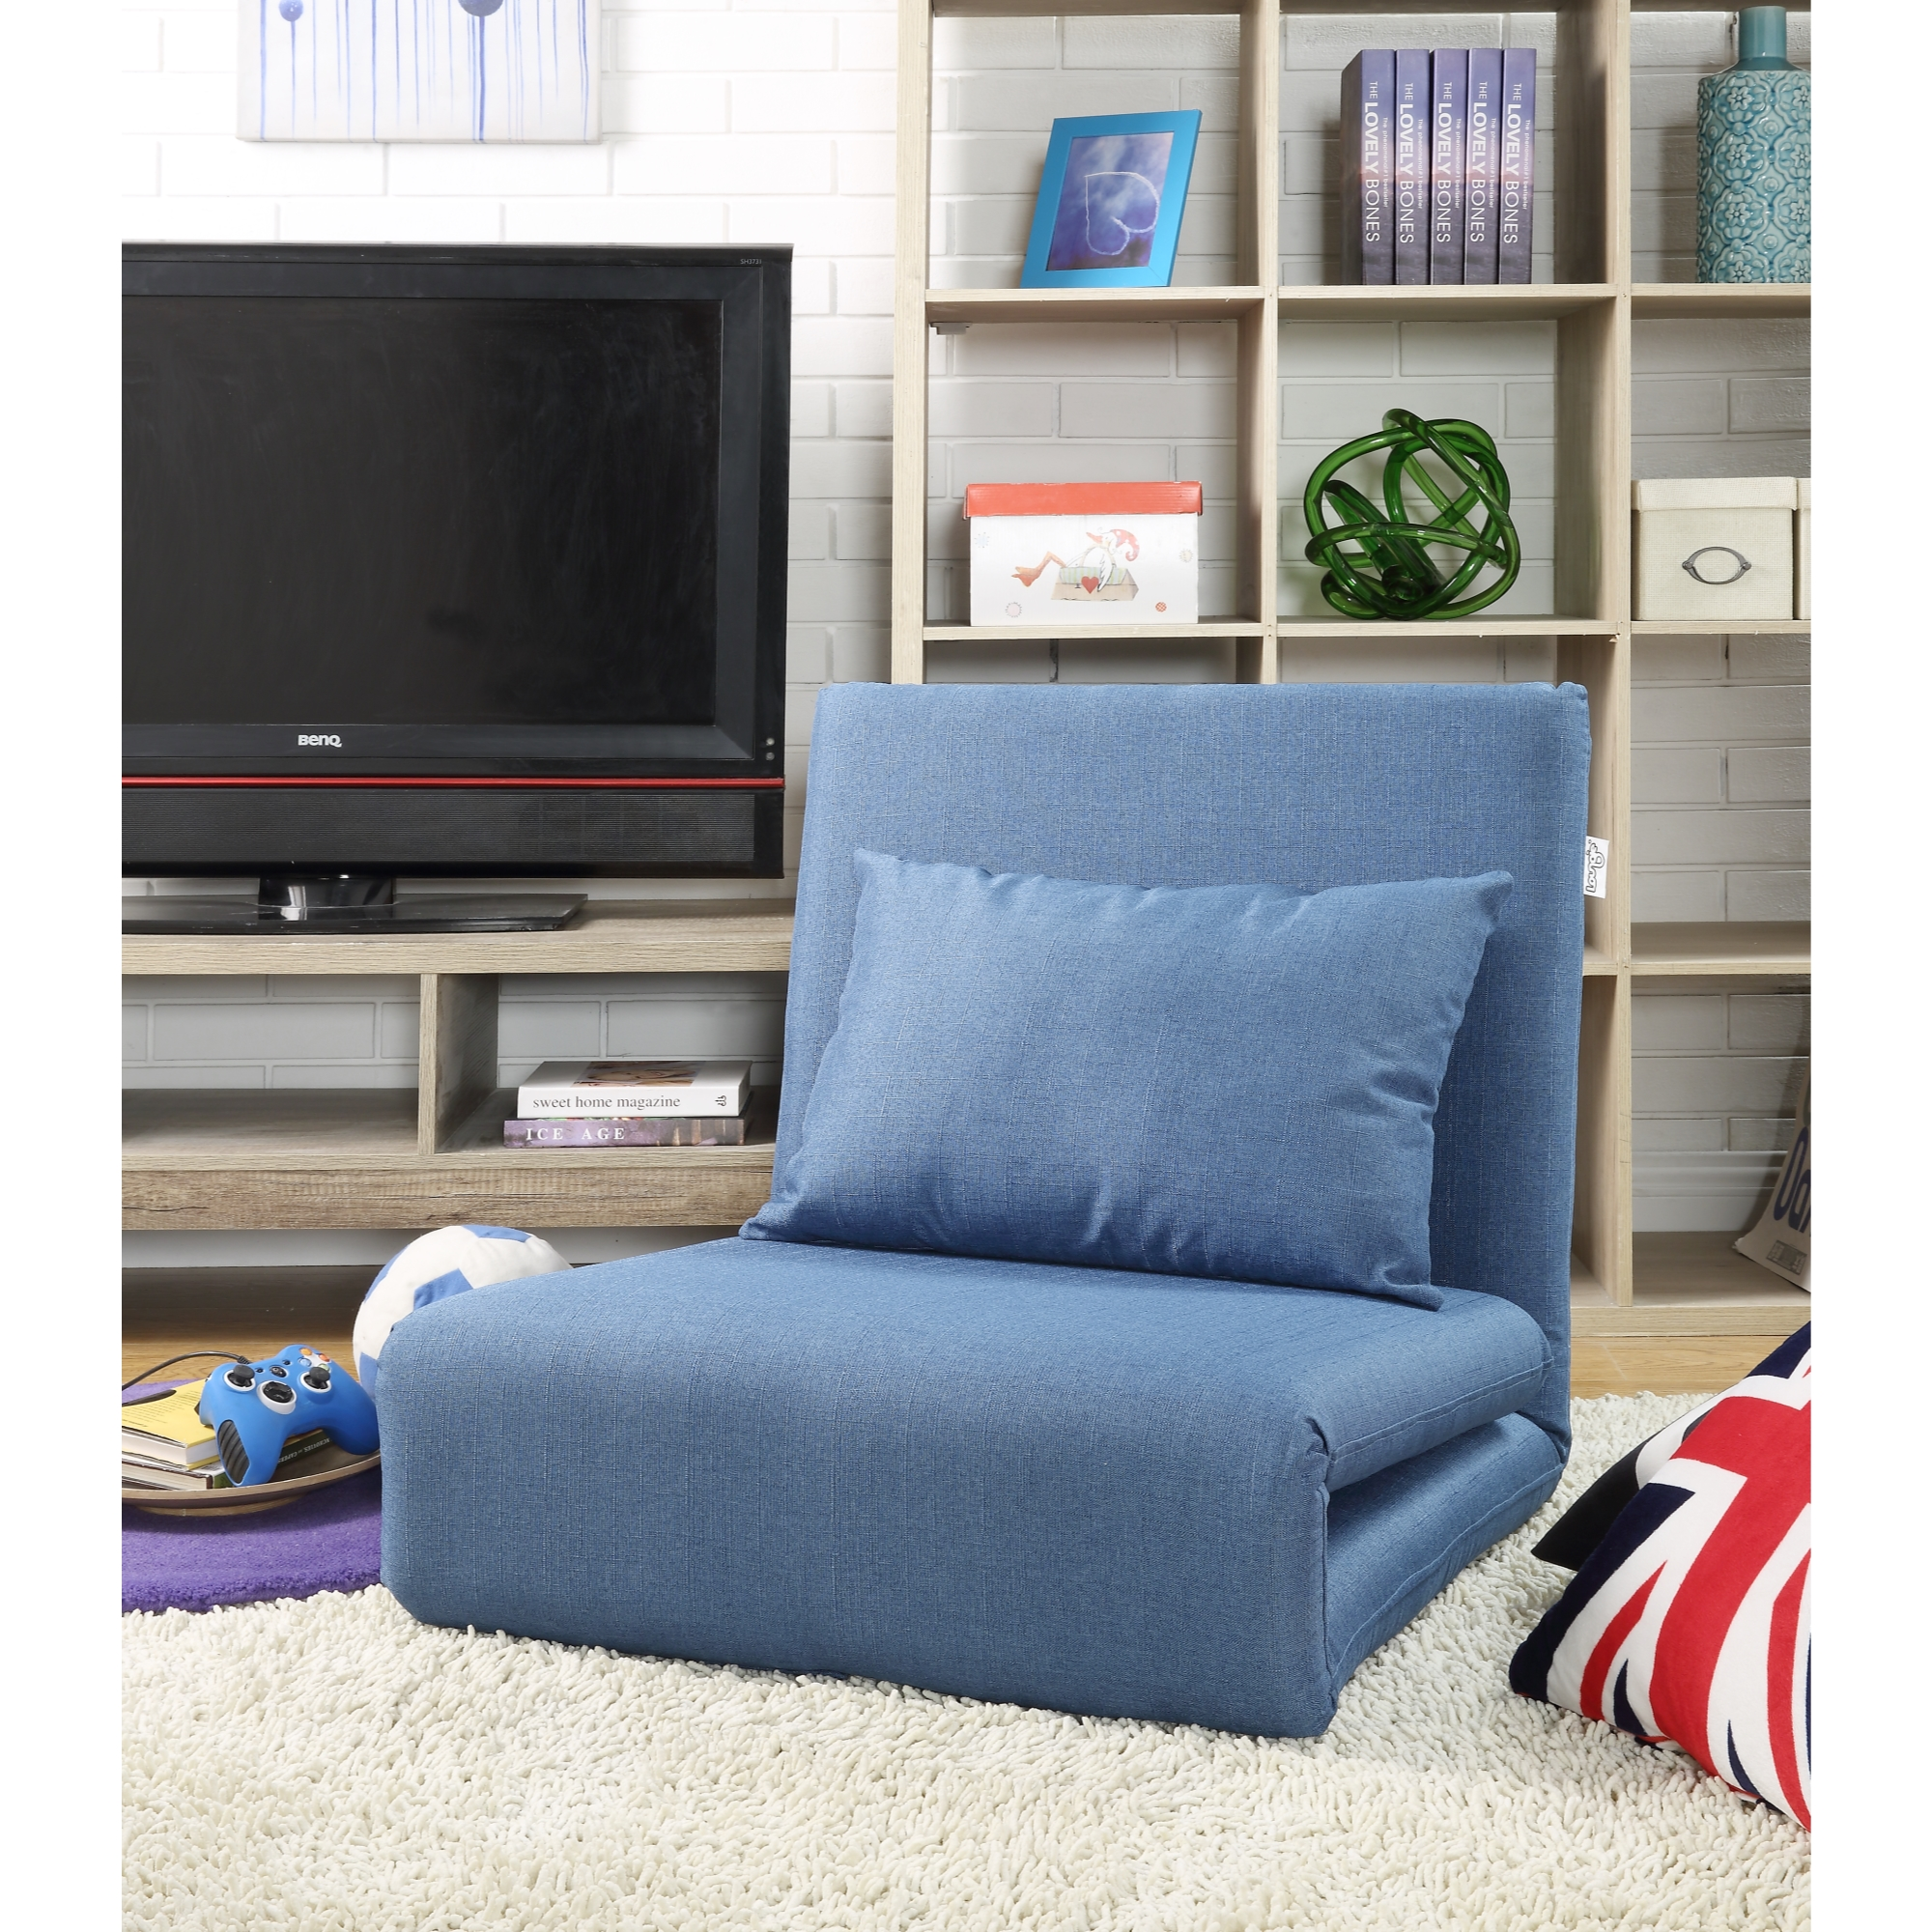 Loungie Blue Linen Chair Sleeper Dorm Bed Couch Lounger Sofa 5-Position Adjustable